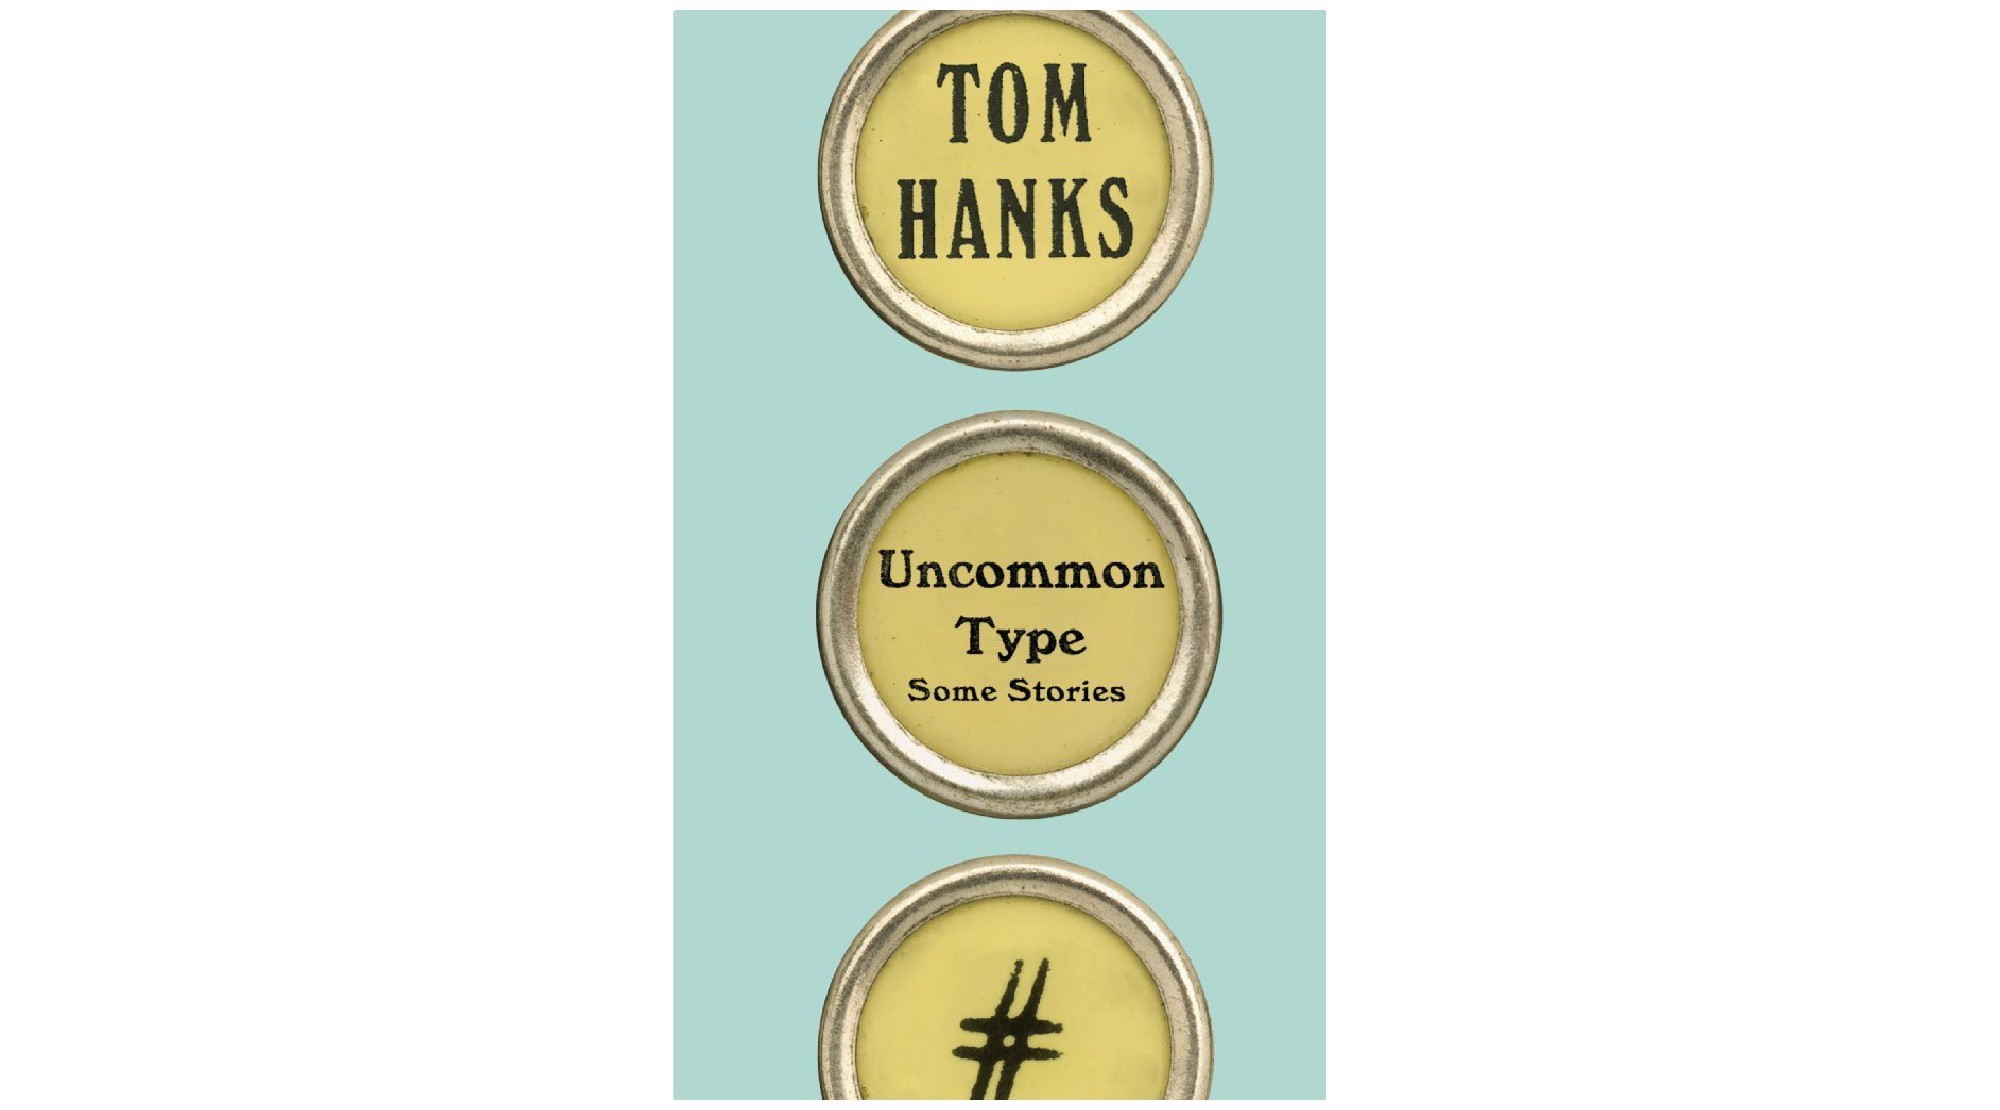 """The cover of the book """"Uncommon Type"""" by Tom Hanks."""